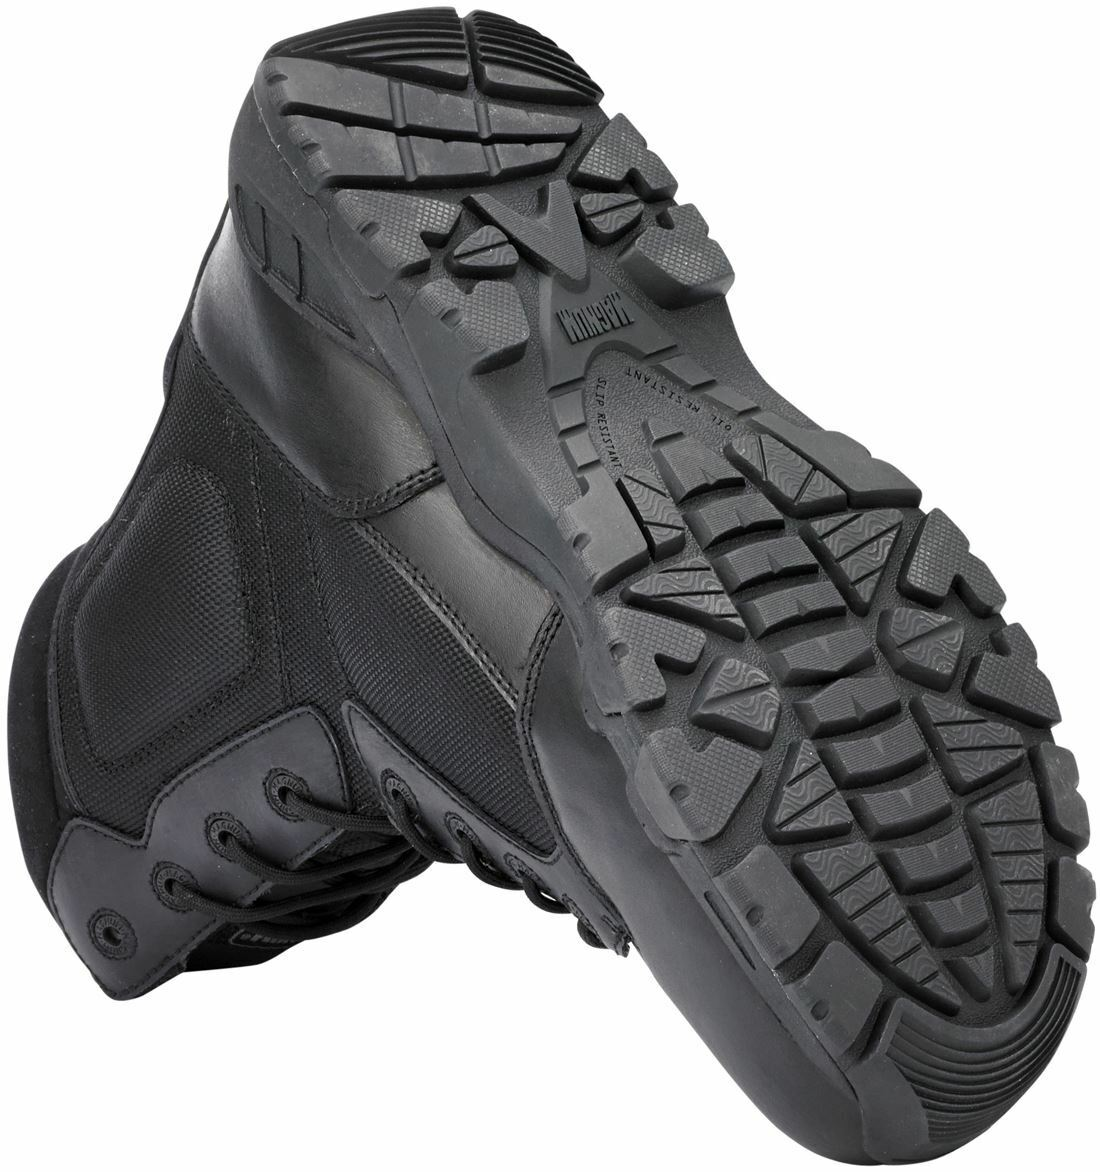 MAGNUM VIPER PRO 8.0 Botas EN TACTICAL POLICE MILITARY SECURITY POLICE TACTICAL FOOTWEAR Negro 6b4072